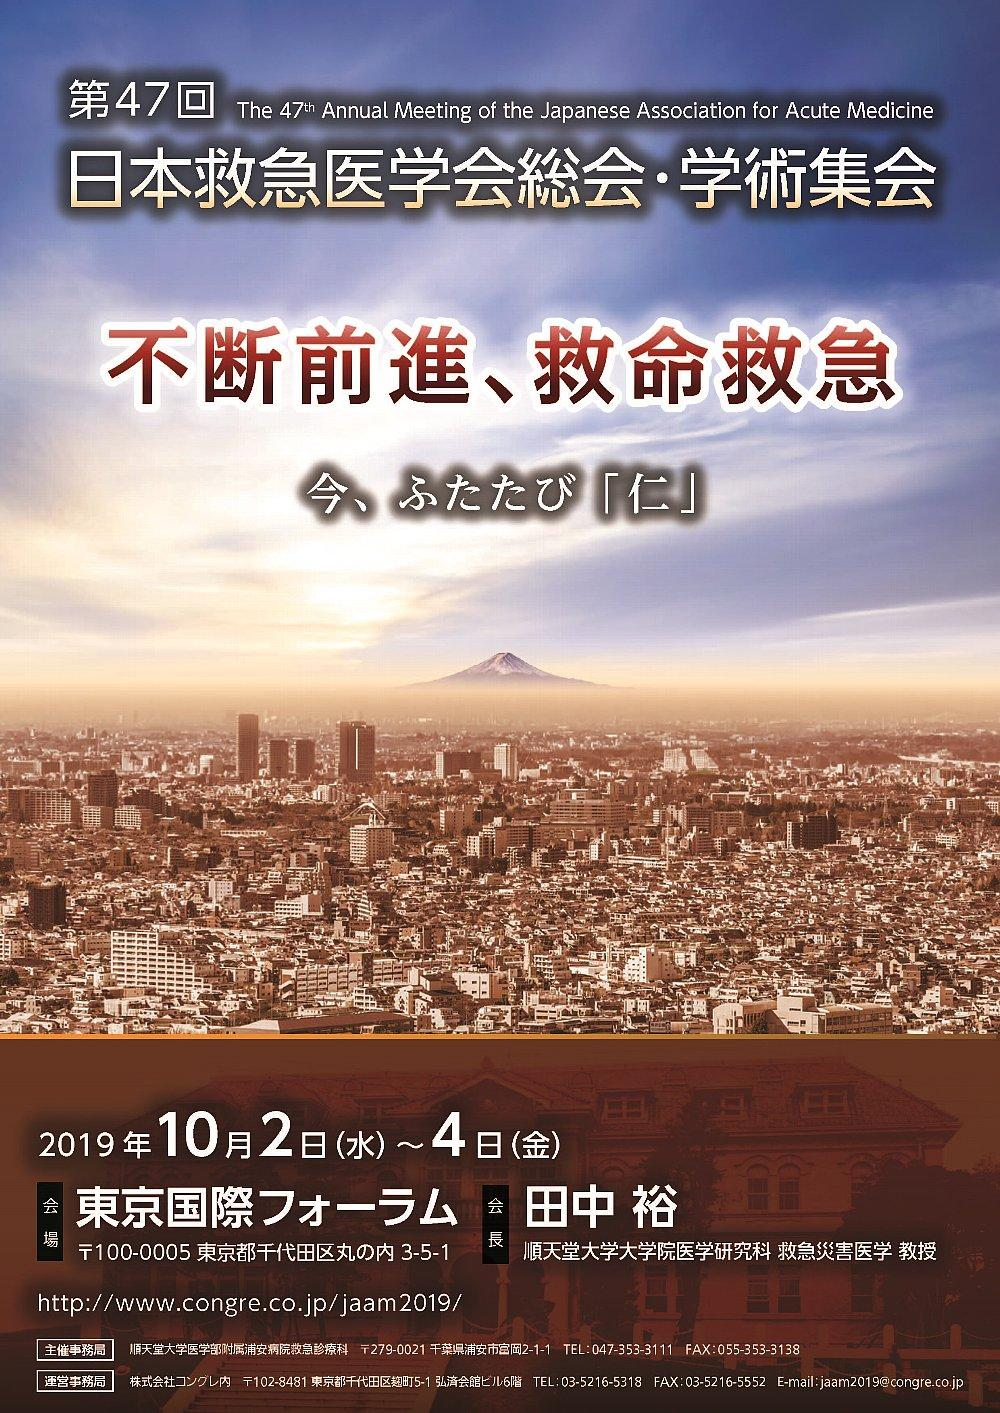 The 47th Annual Meeting of the Japanese Association for Acute Medicine